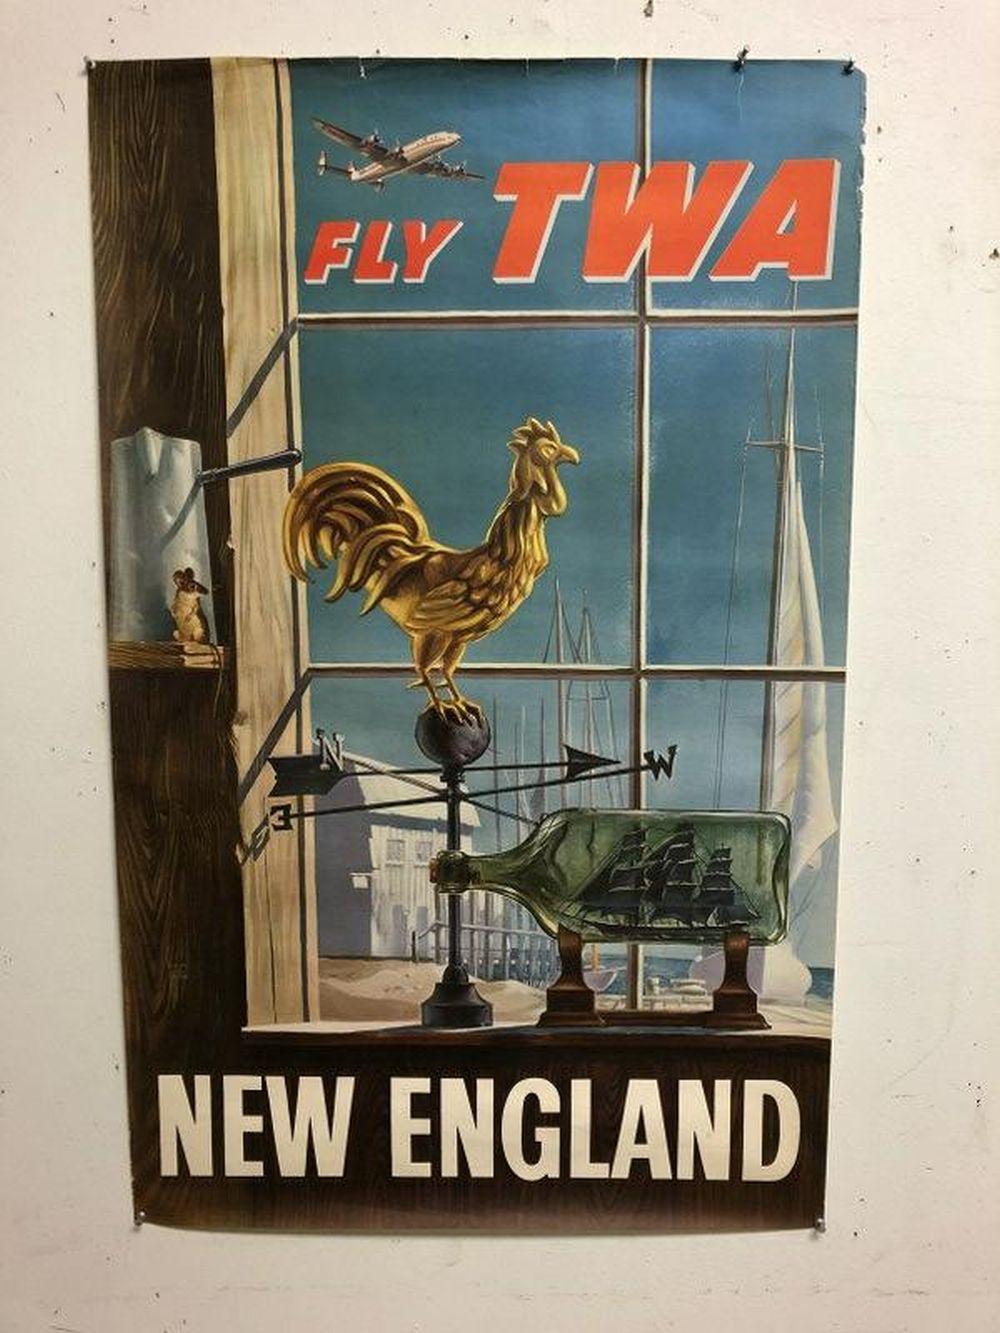 FLY TWA NEW ENGLAND, BORDER TEARS, ARTIST WILLIAM WARD